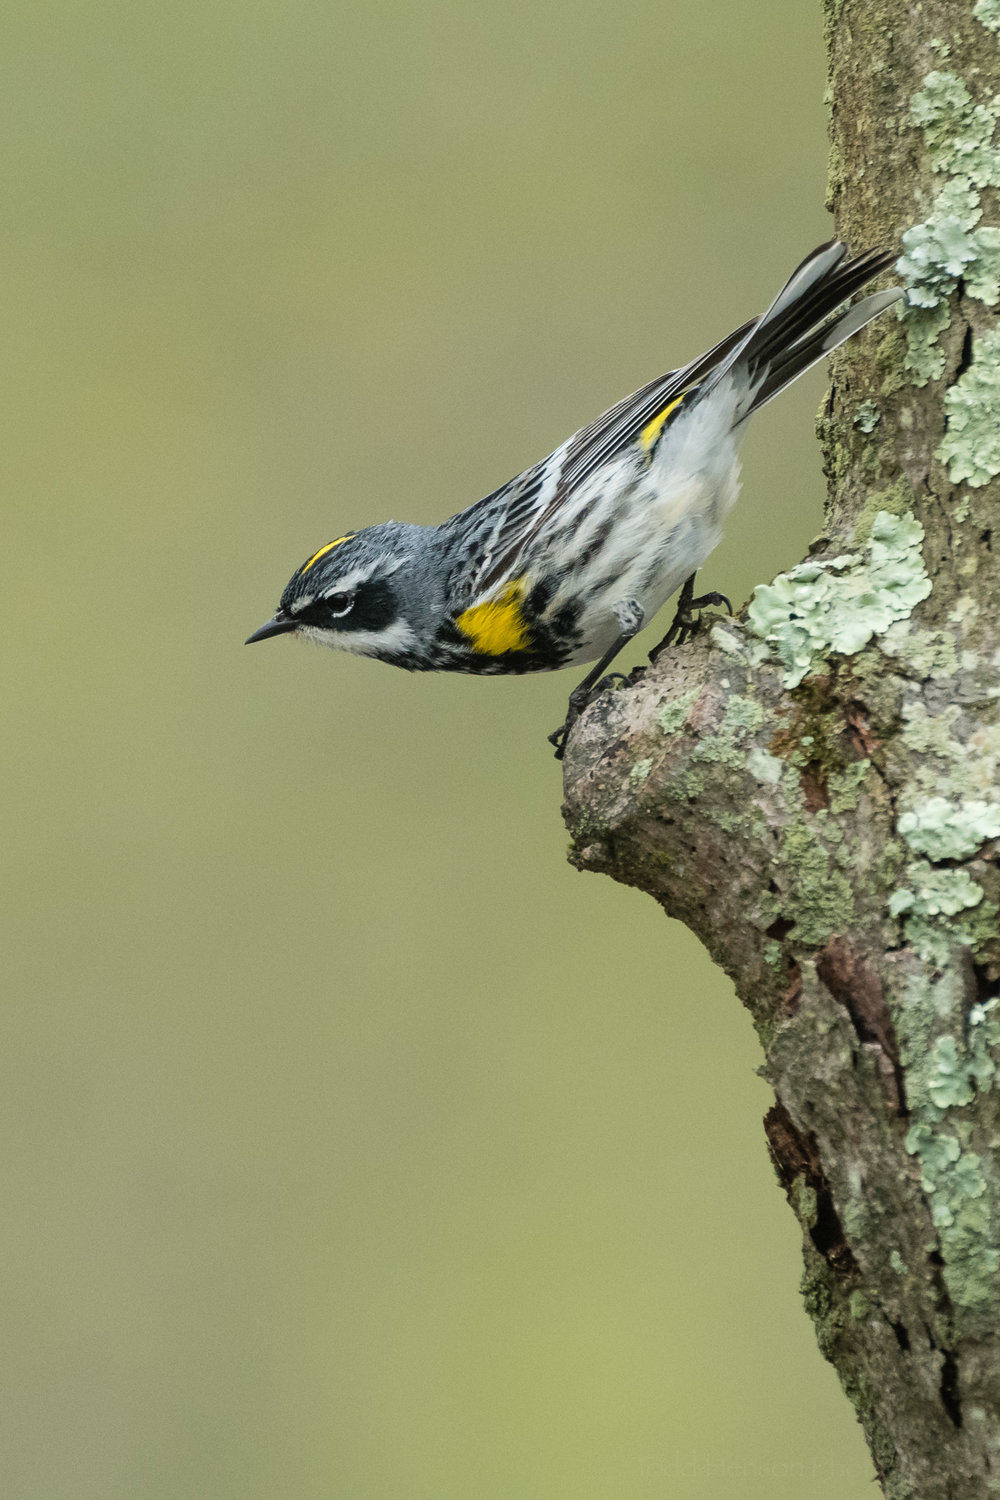 A Yellow-rumped Warbler preparing to fly. I deliberately positioned myself to take advantage of the out of focus green background.